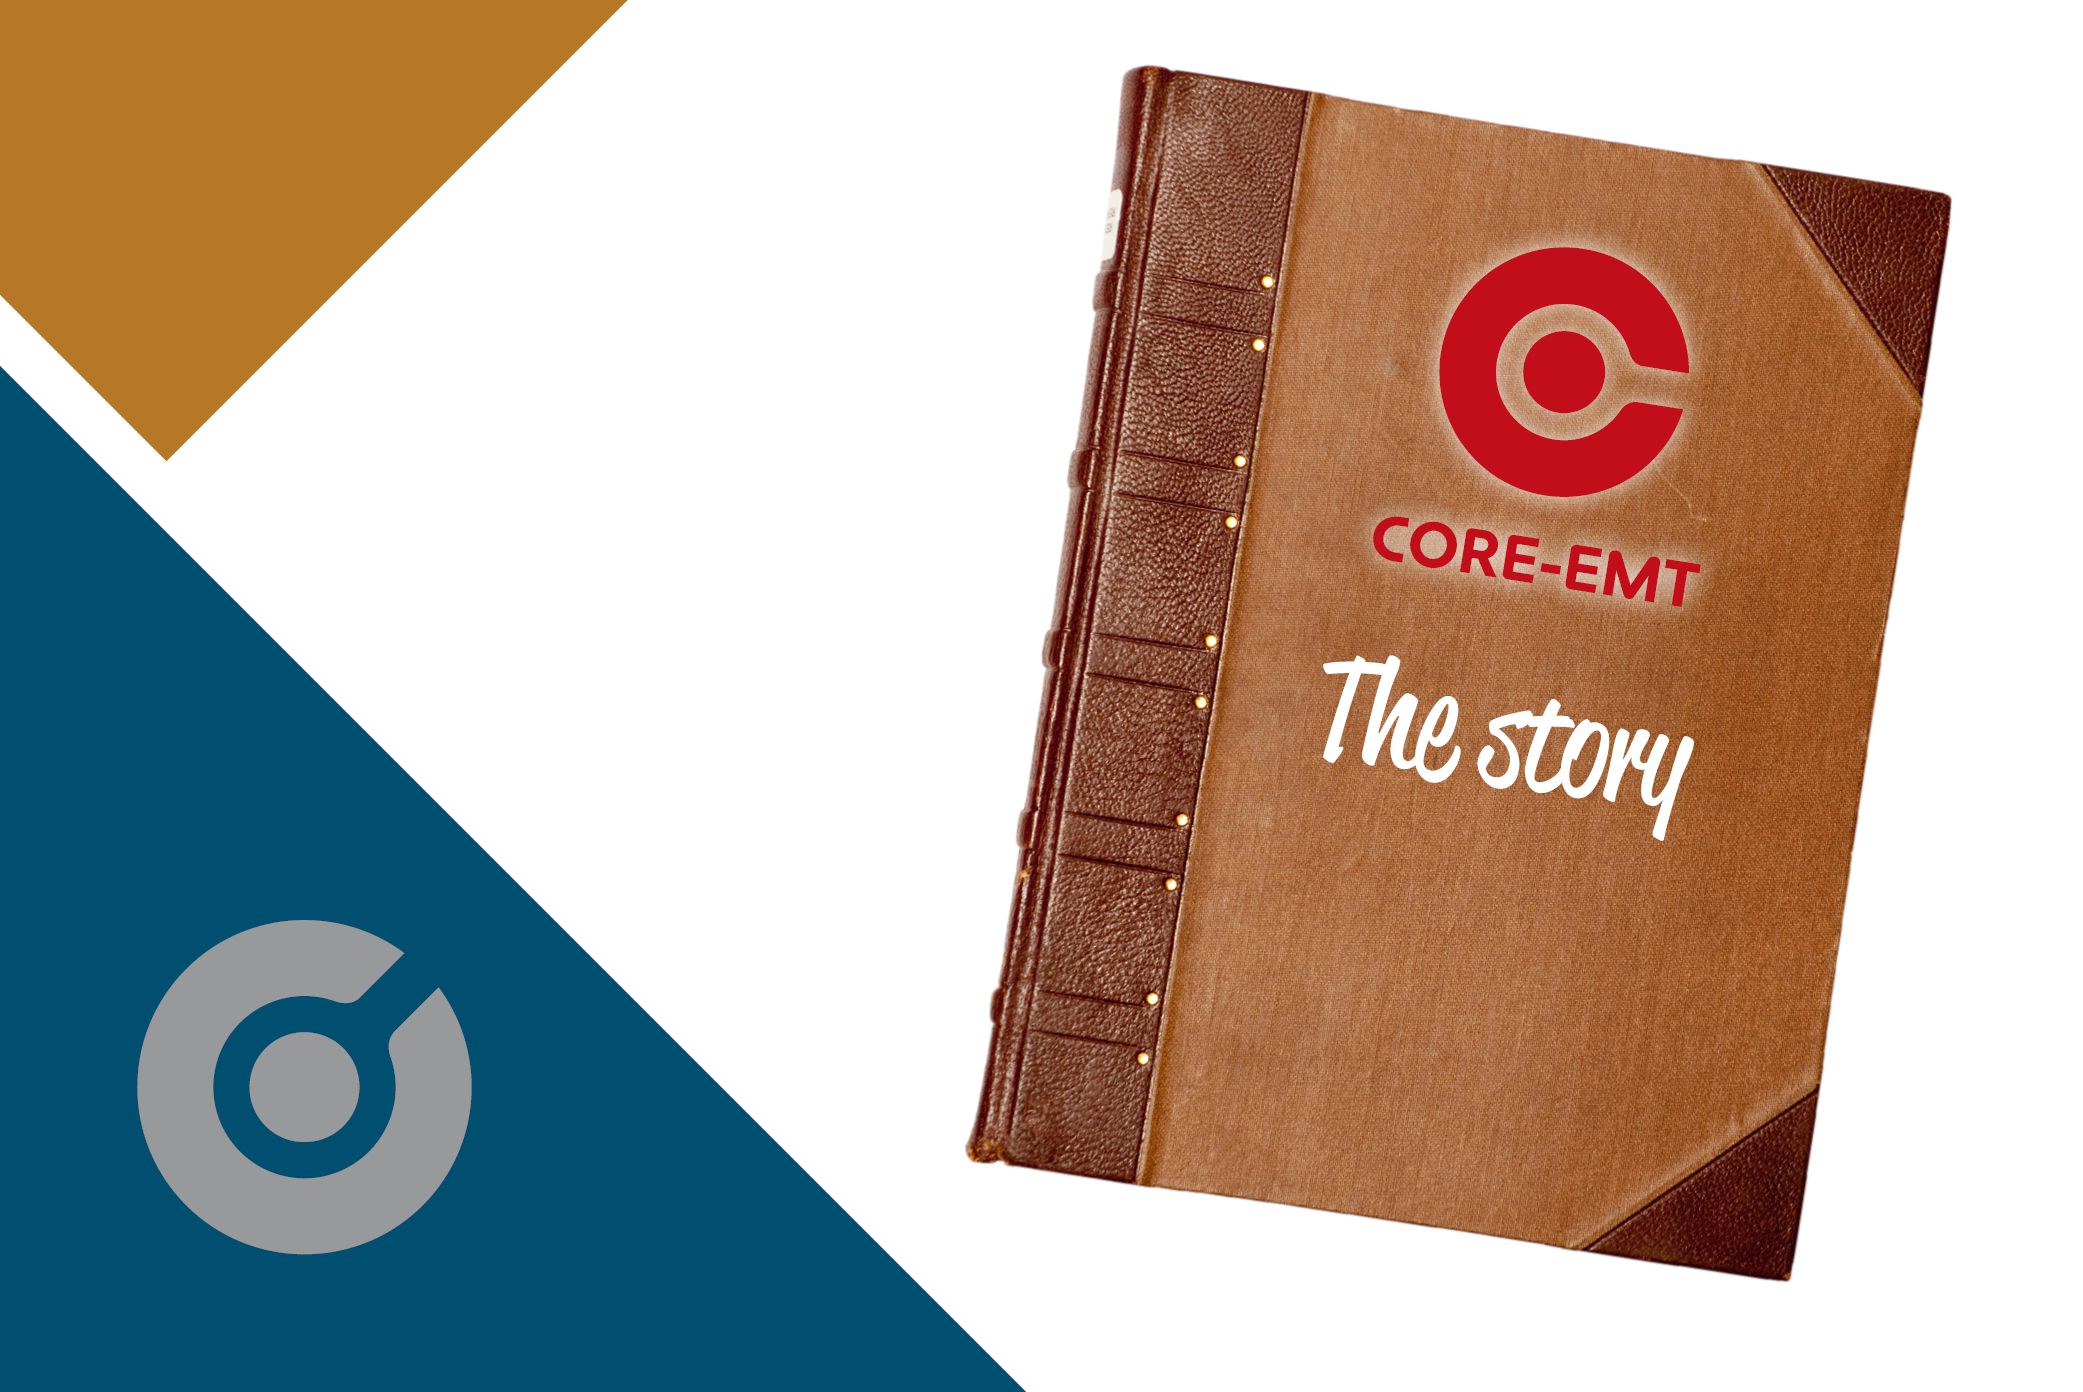 The story about CORE-emt